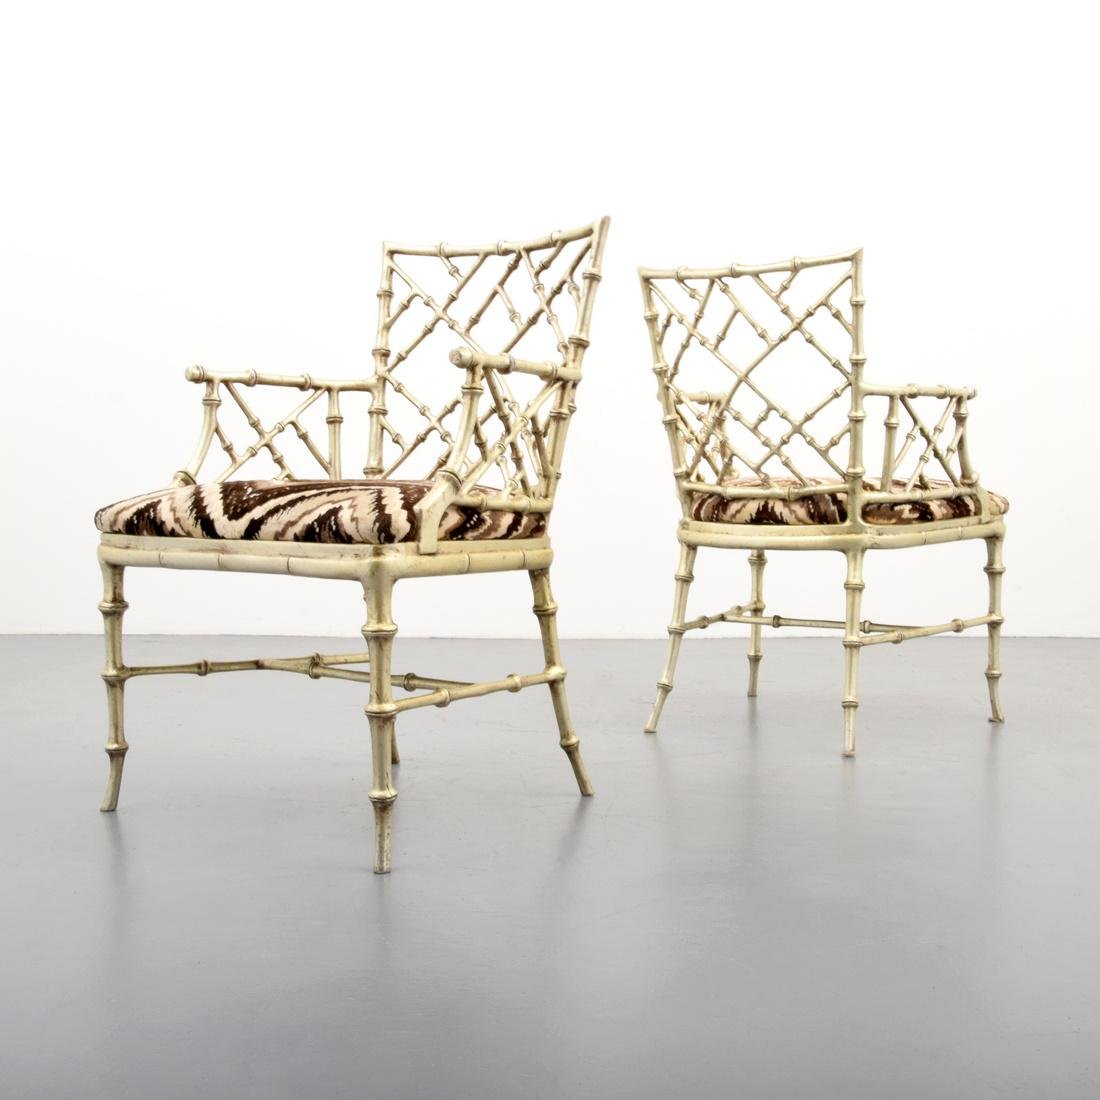 Pair of Phyllis Morris Originals Faux Bamboo Arm Chairs